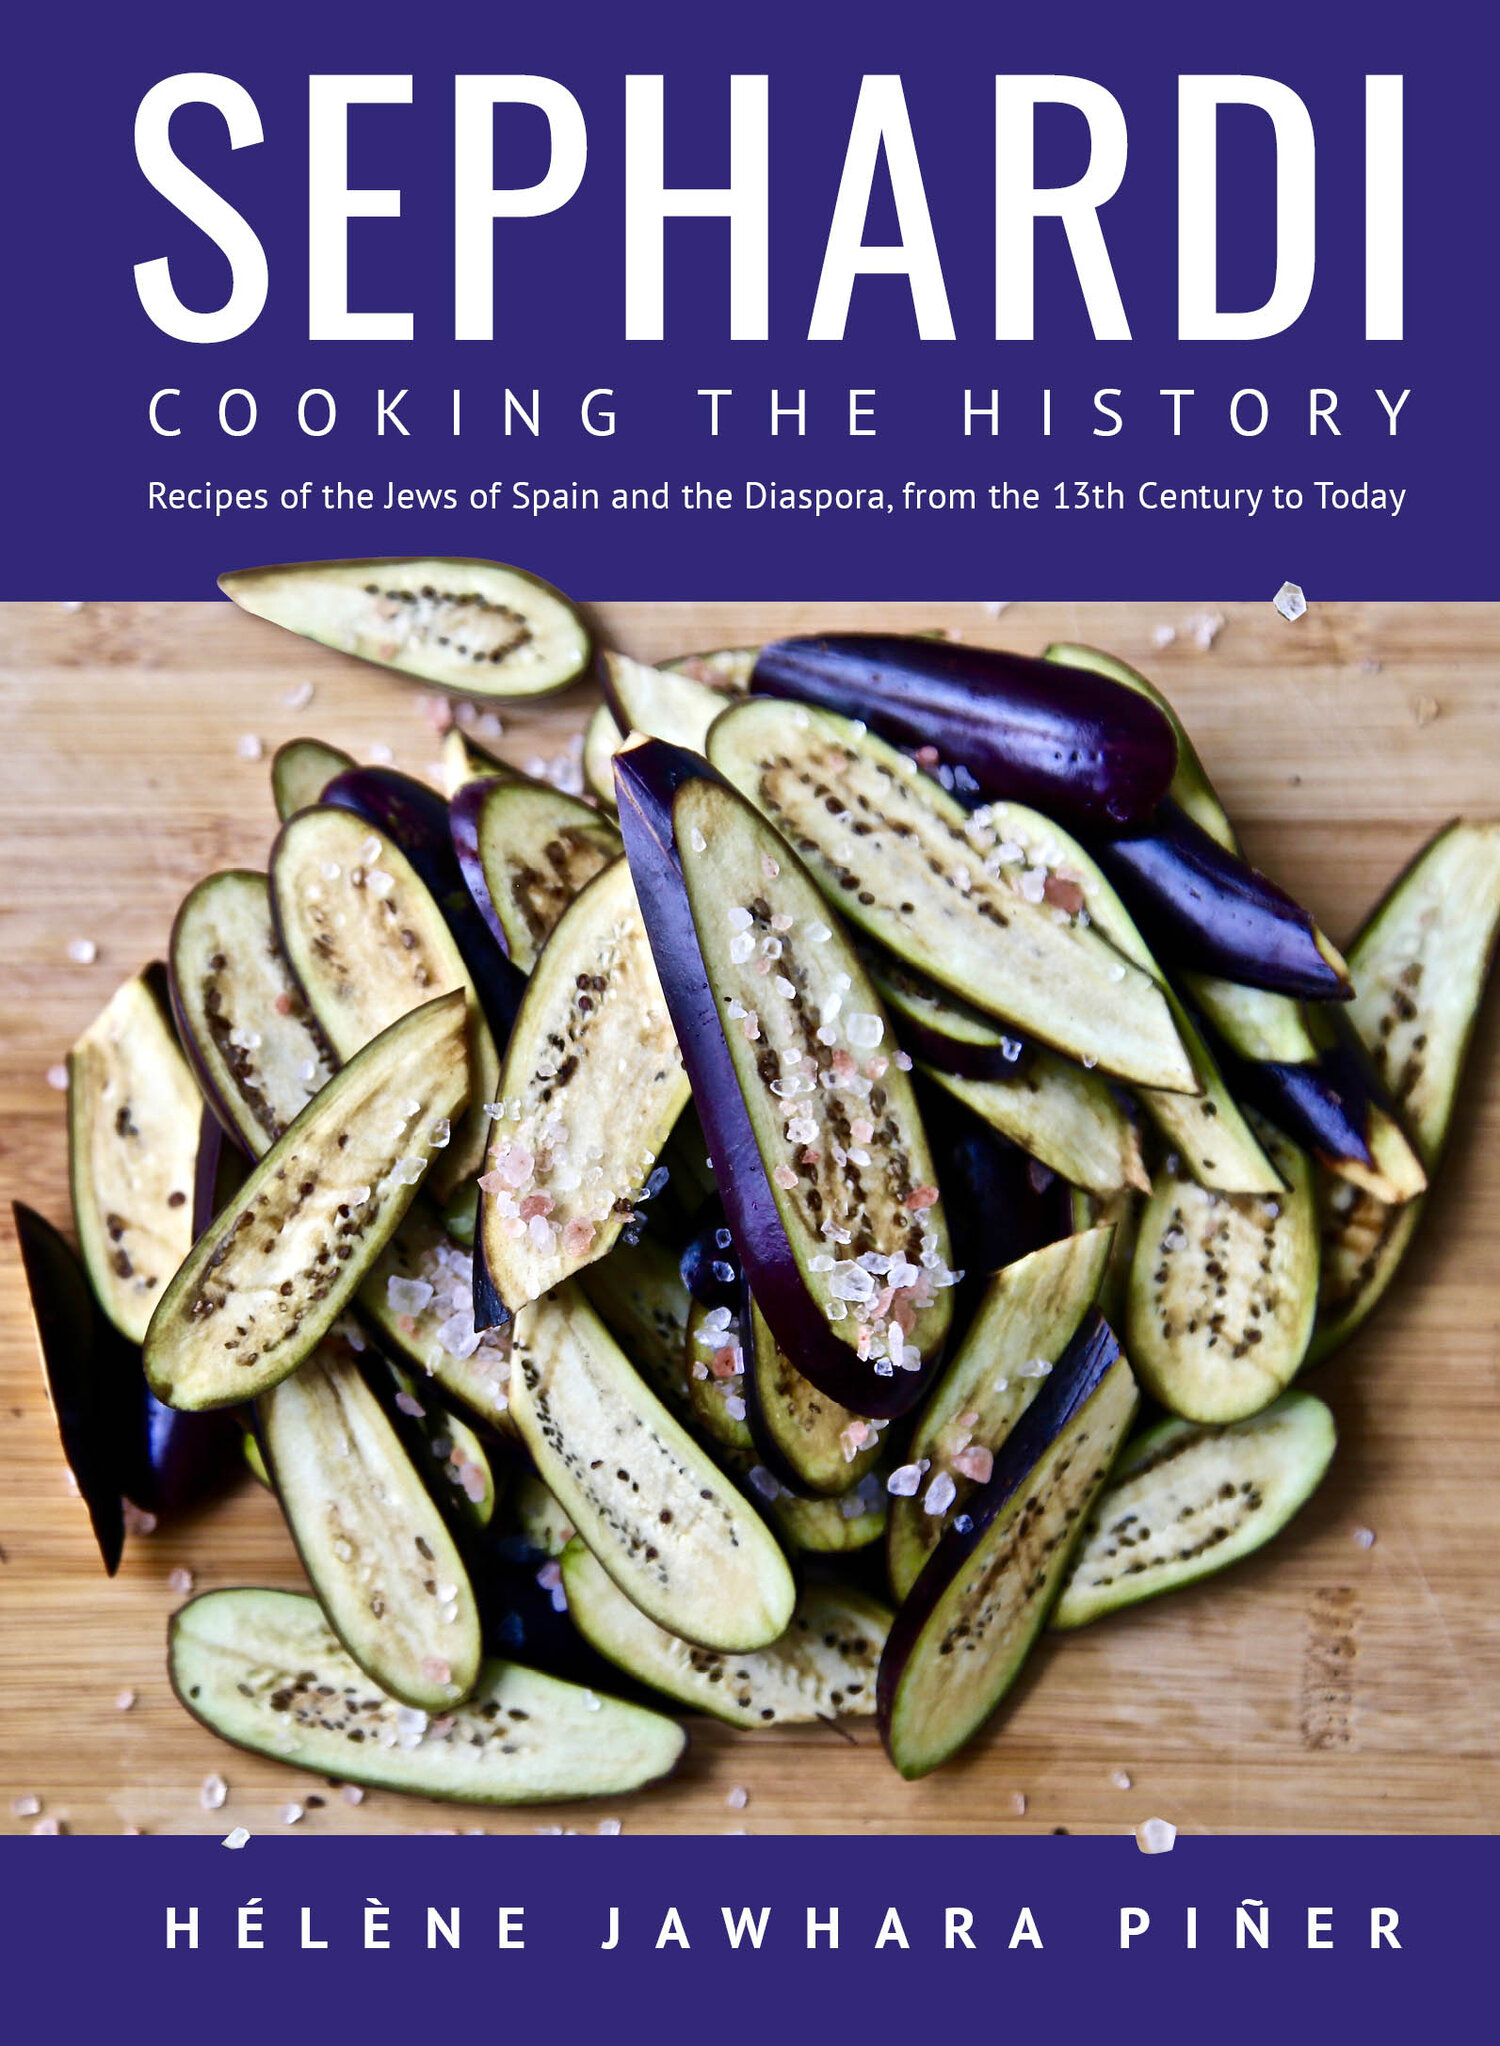 Sephardi Cooking The History Recipes Of The Jews Of Spain And The Diaspora From The 13th Century To Today Academic Studies Press